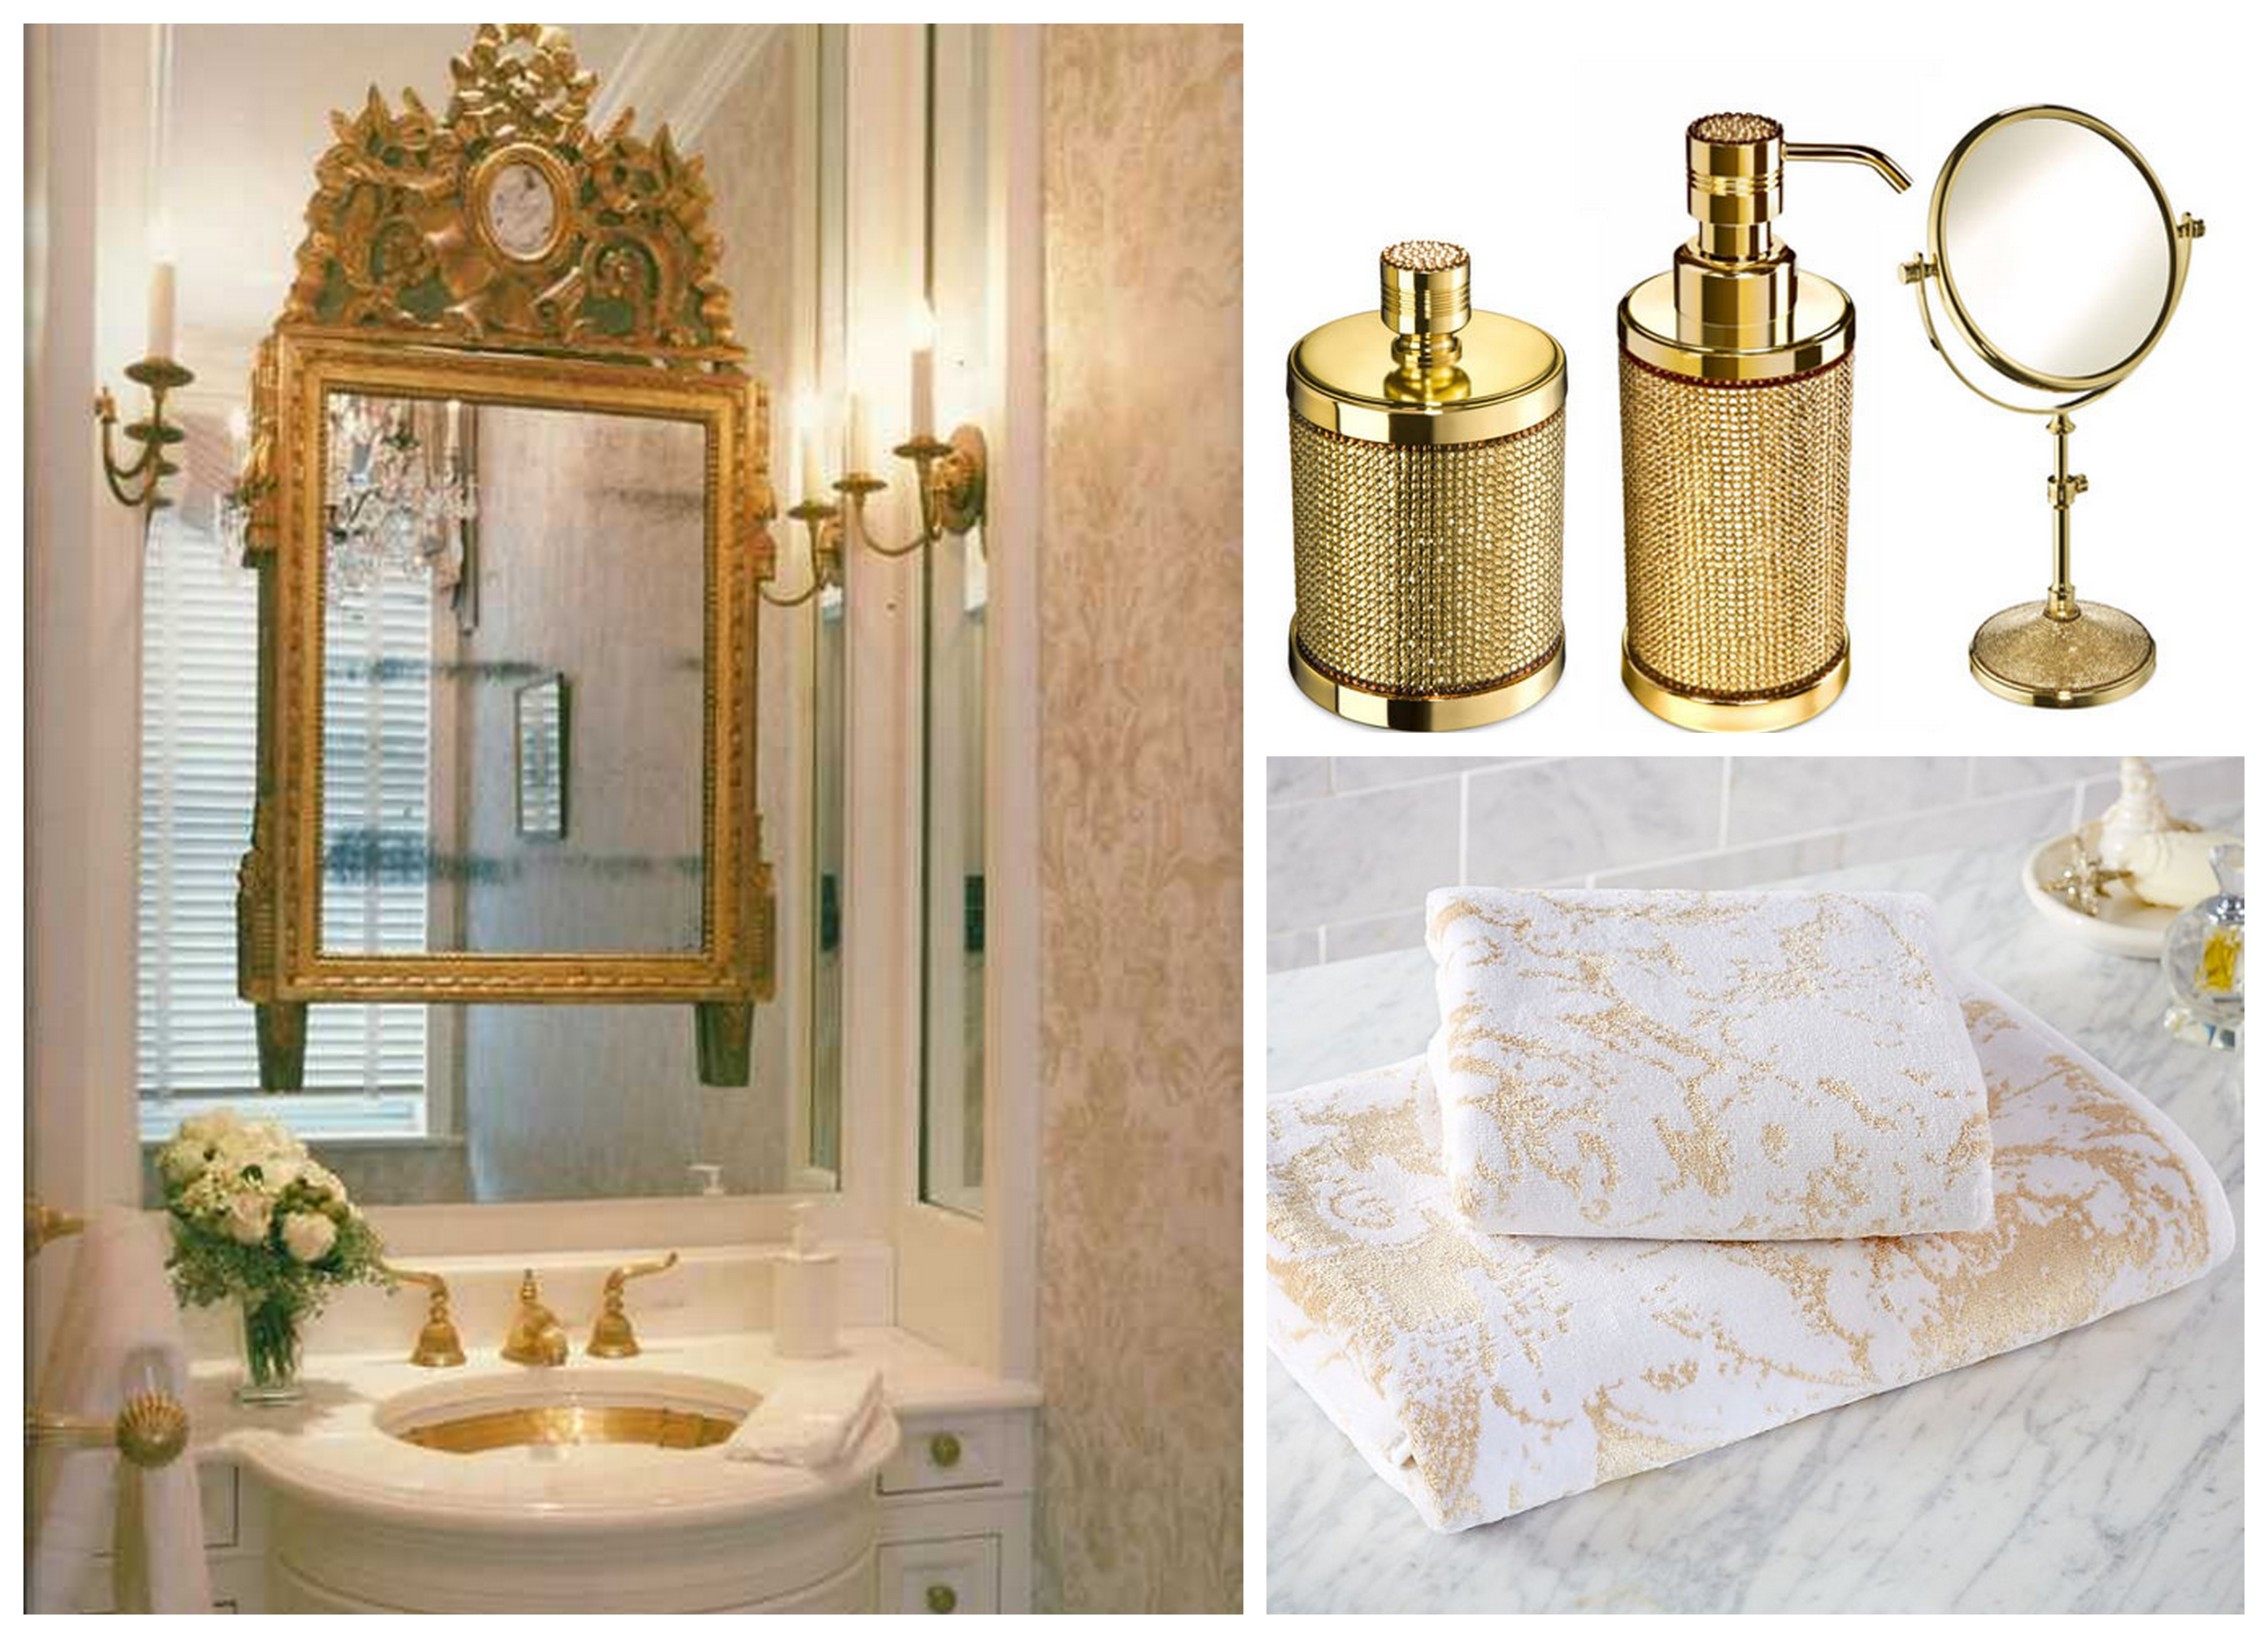 25 Best Ideas About Gold Bathroom Accessories On: 25 Cool Pictures And Ideas Of Gold Bathroom Tiles